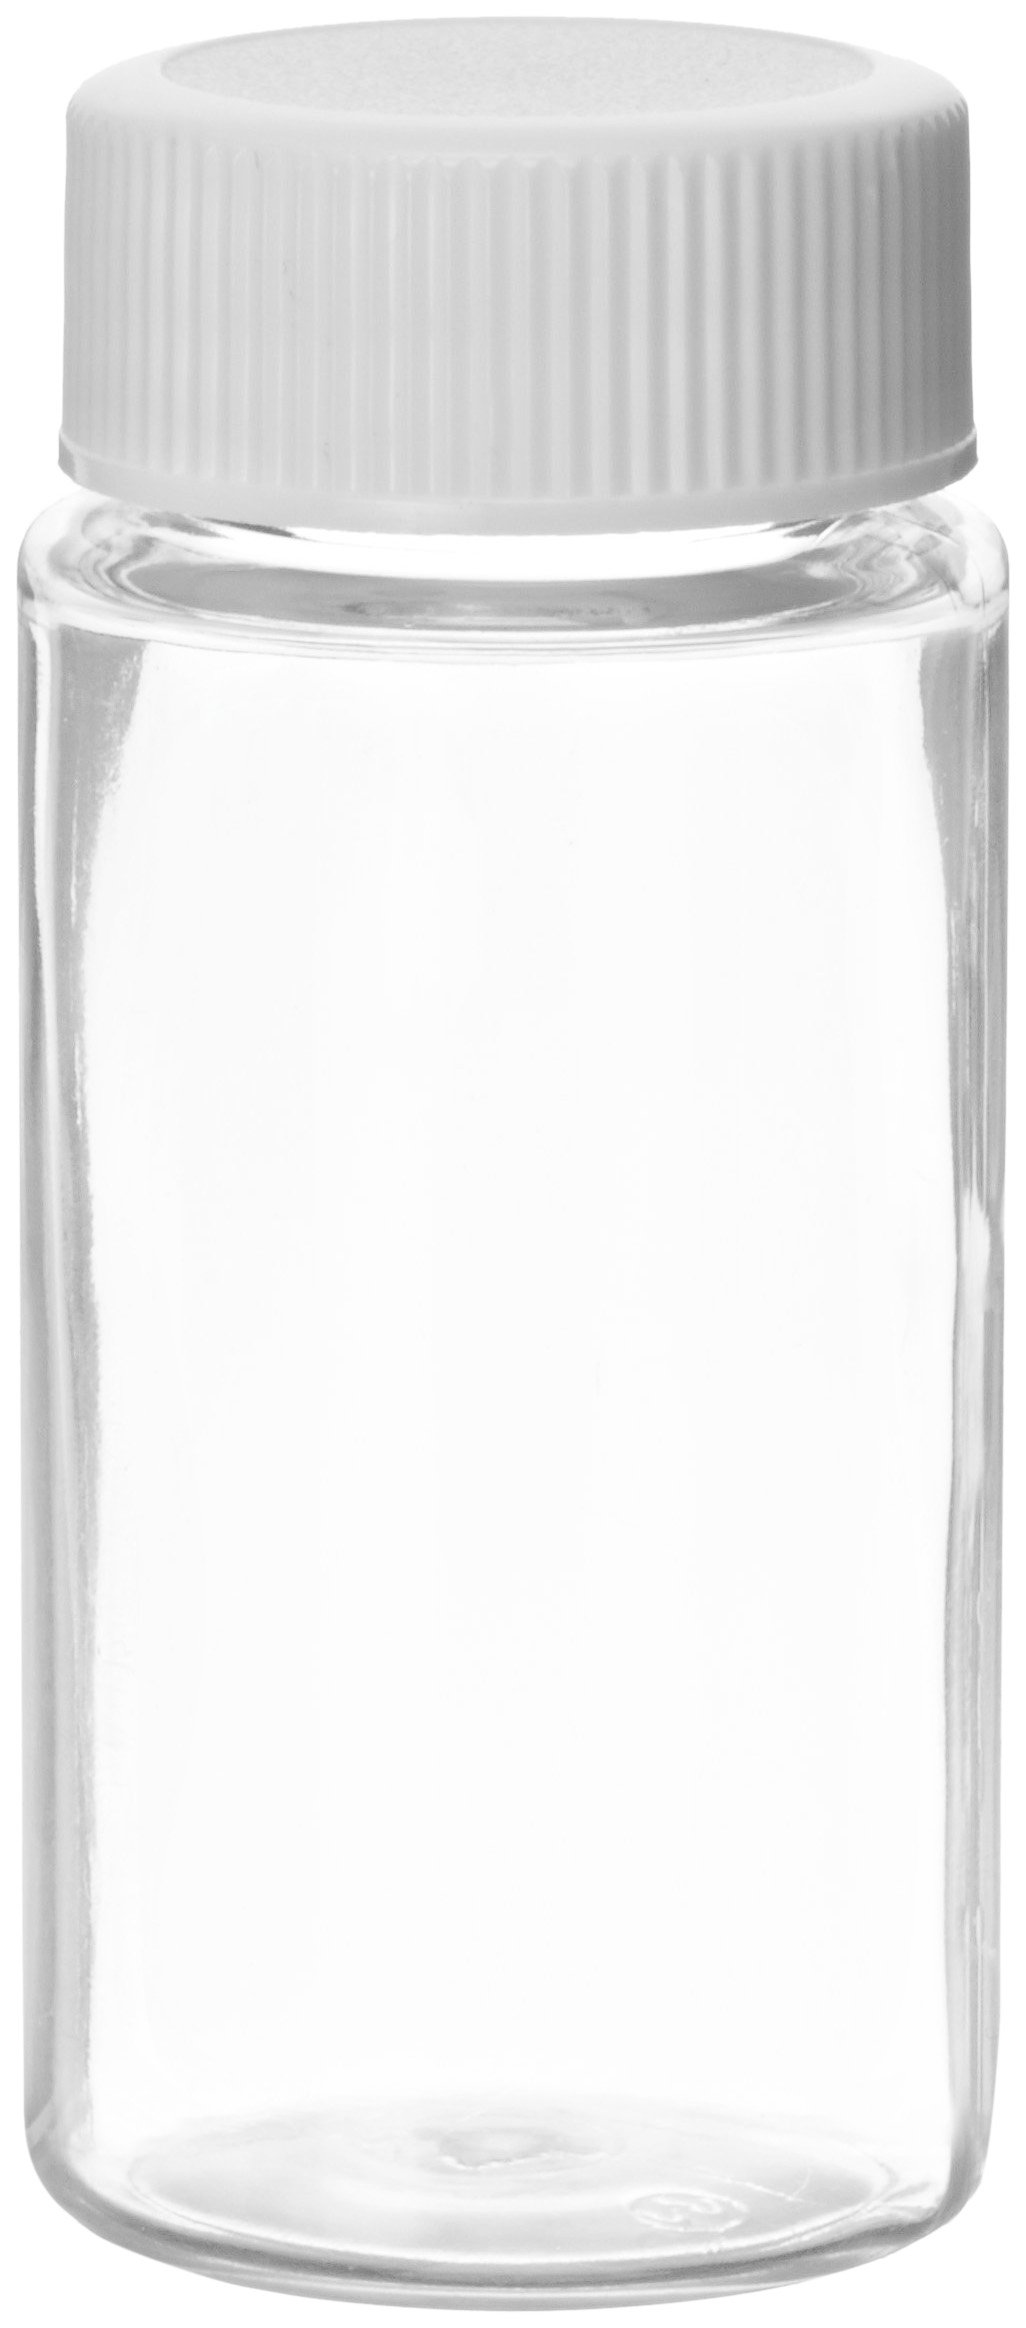 Wheaton 986731 PET 20mL Liquid Scintillation Vial, with Polypropylene Metal Foil Lined Screw Cap Attached (Case of 500) by Wheaton